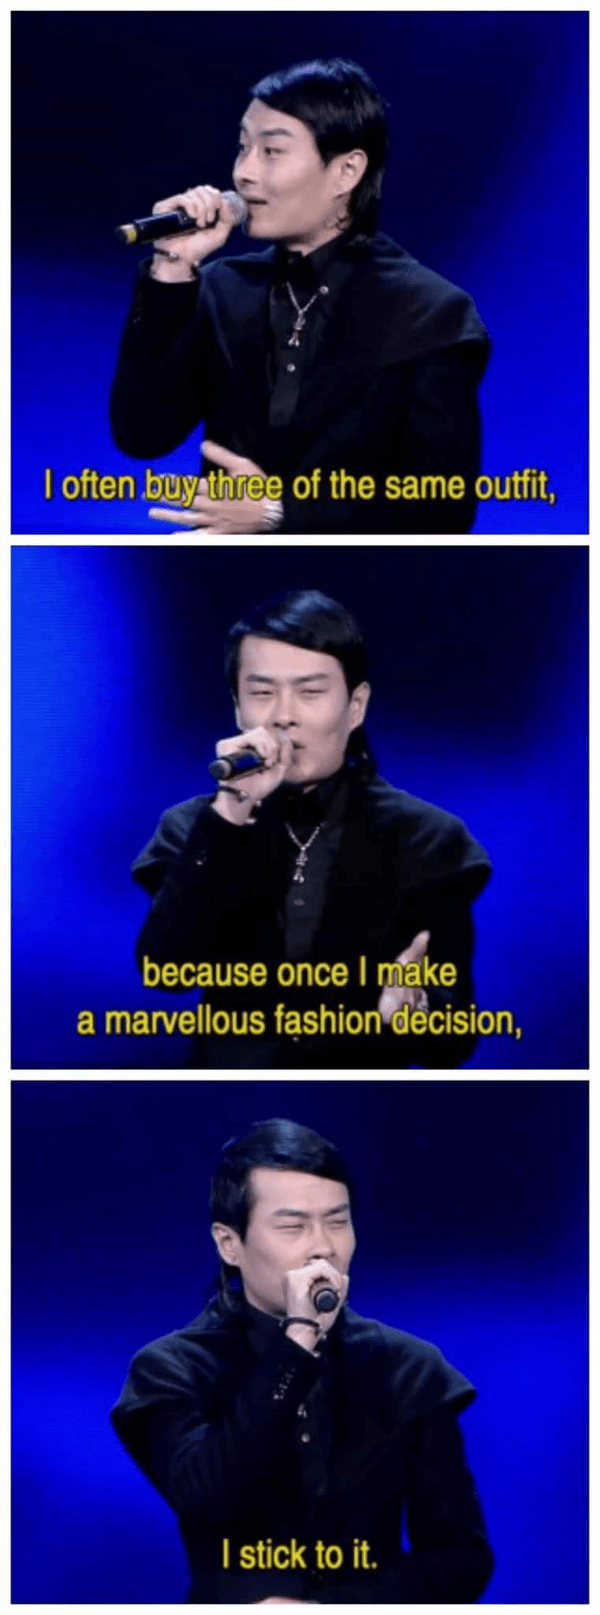 Mervellous Fashion Decision